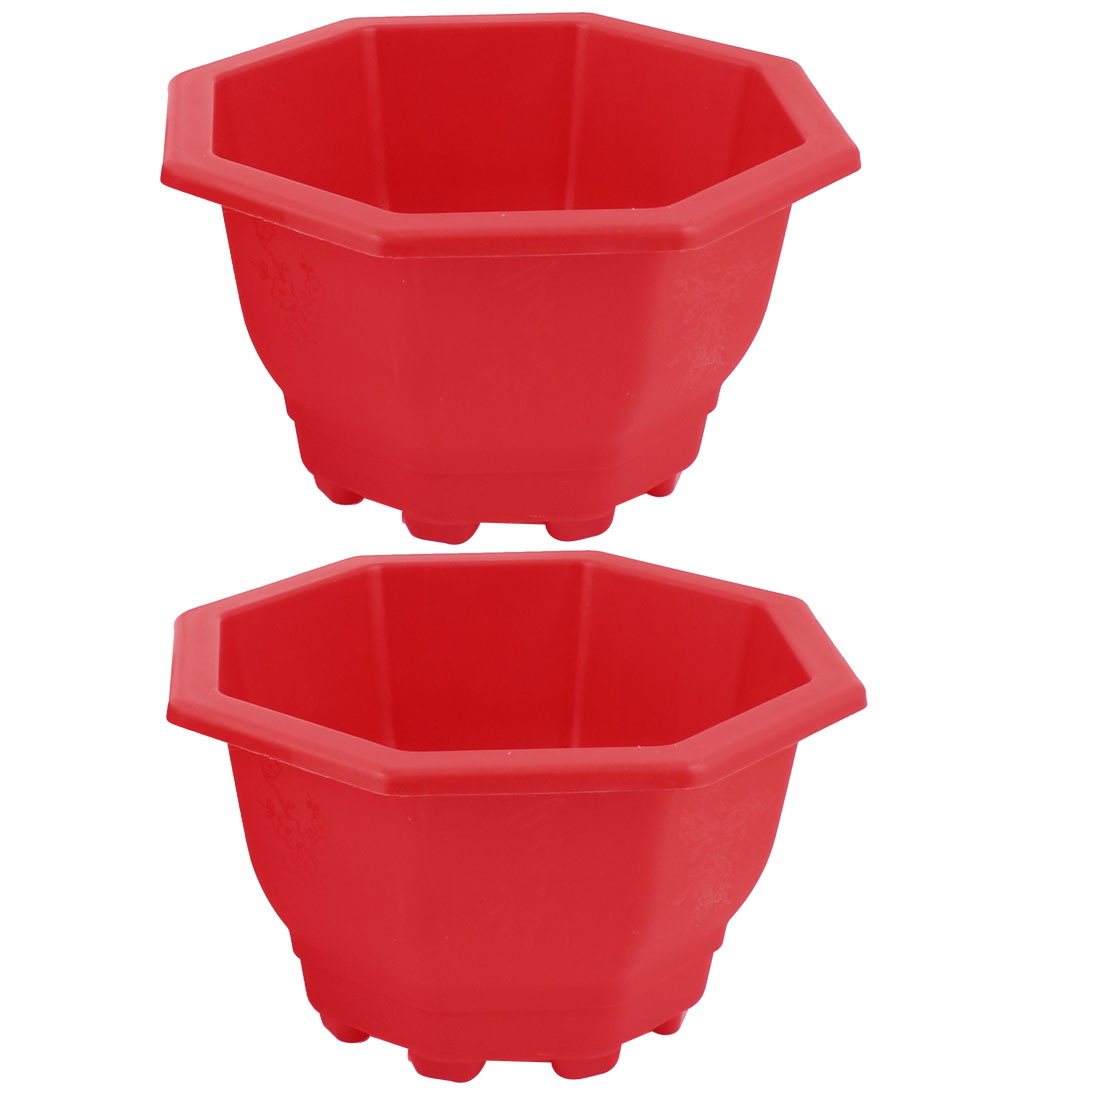 2pcs Blue Red Plastic Octagon Shape Garden Planter Plant Flower Pot Barrels Flowerpot